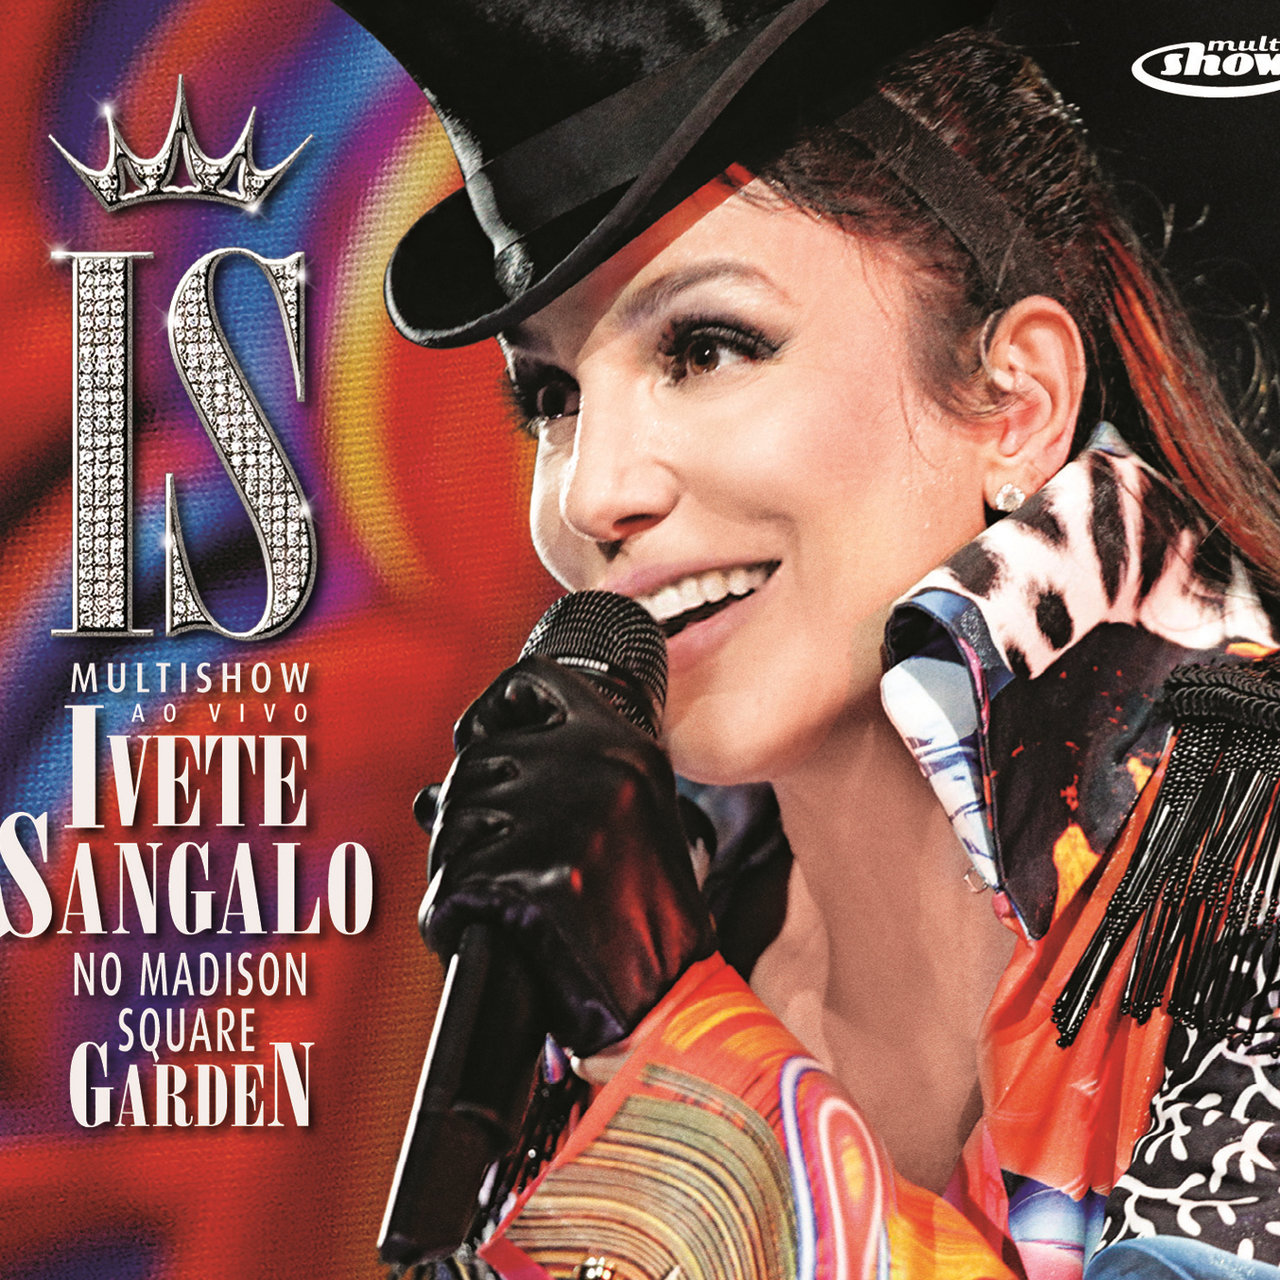 Multishow Ao Vivo - Ivete Sangalo No Madison Square Garden (Ao Vivo No Madison Square Garden / 2010)